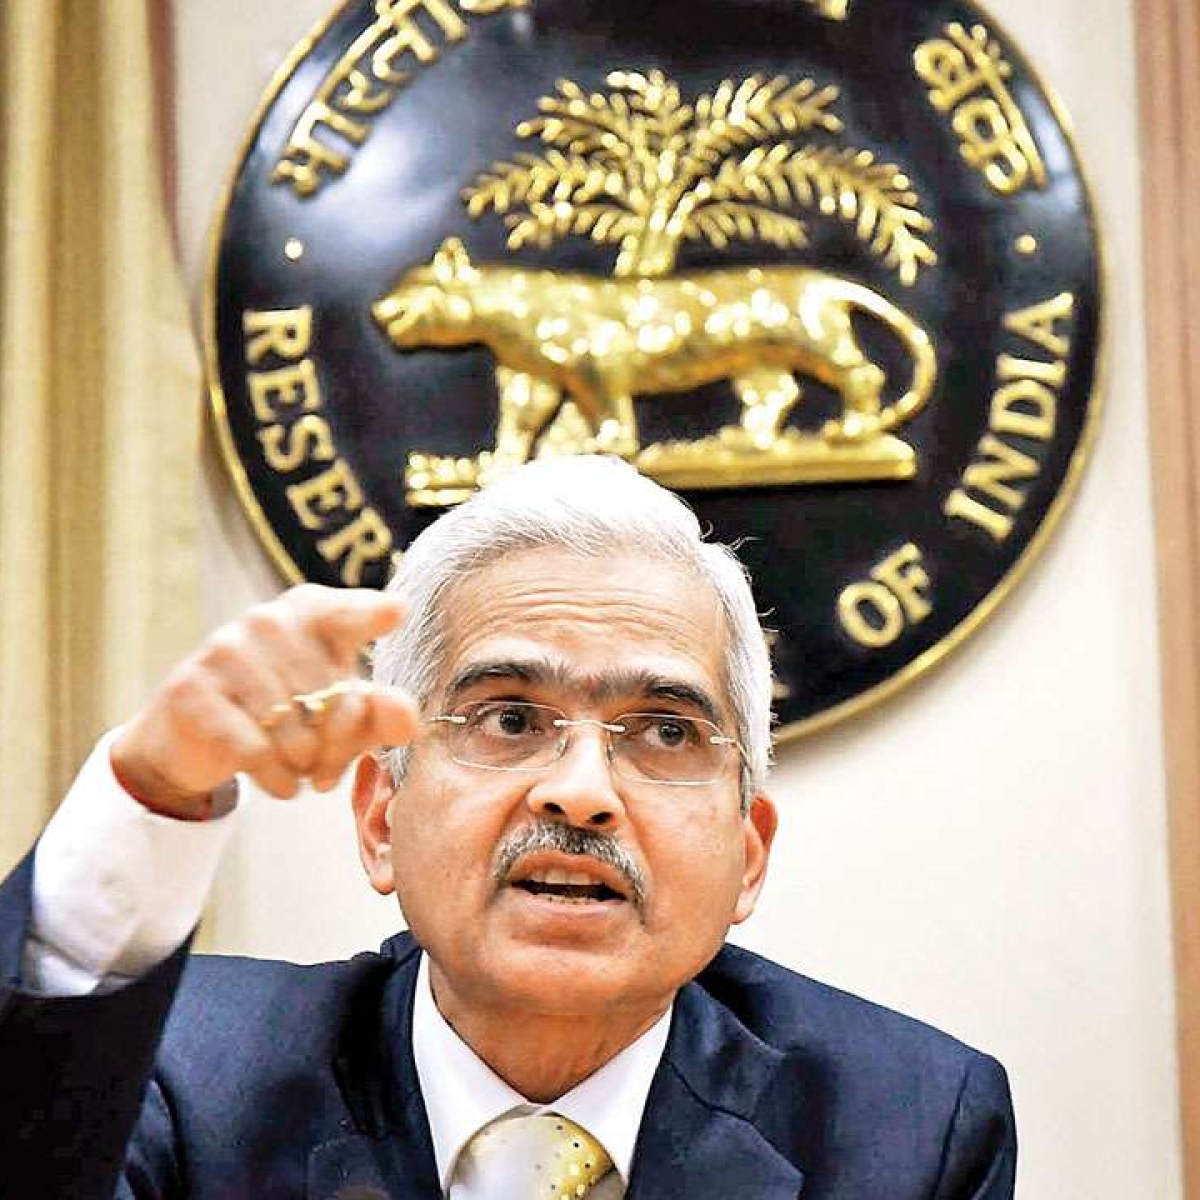 RBI governor focuses on small borrowers and lenders, health sector institutions in stimulus measures